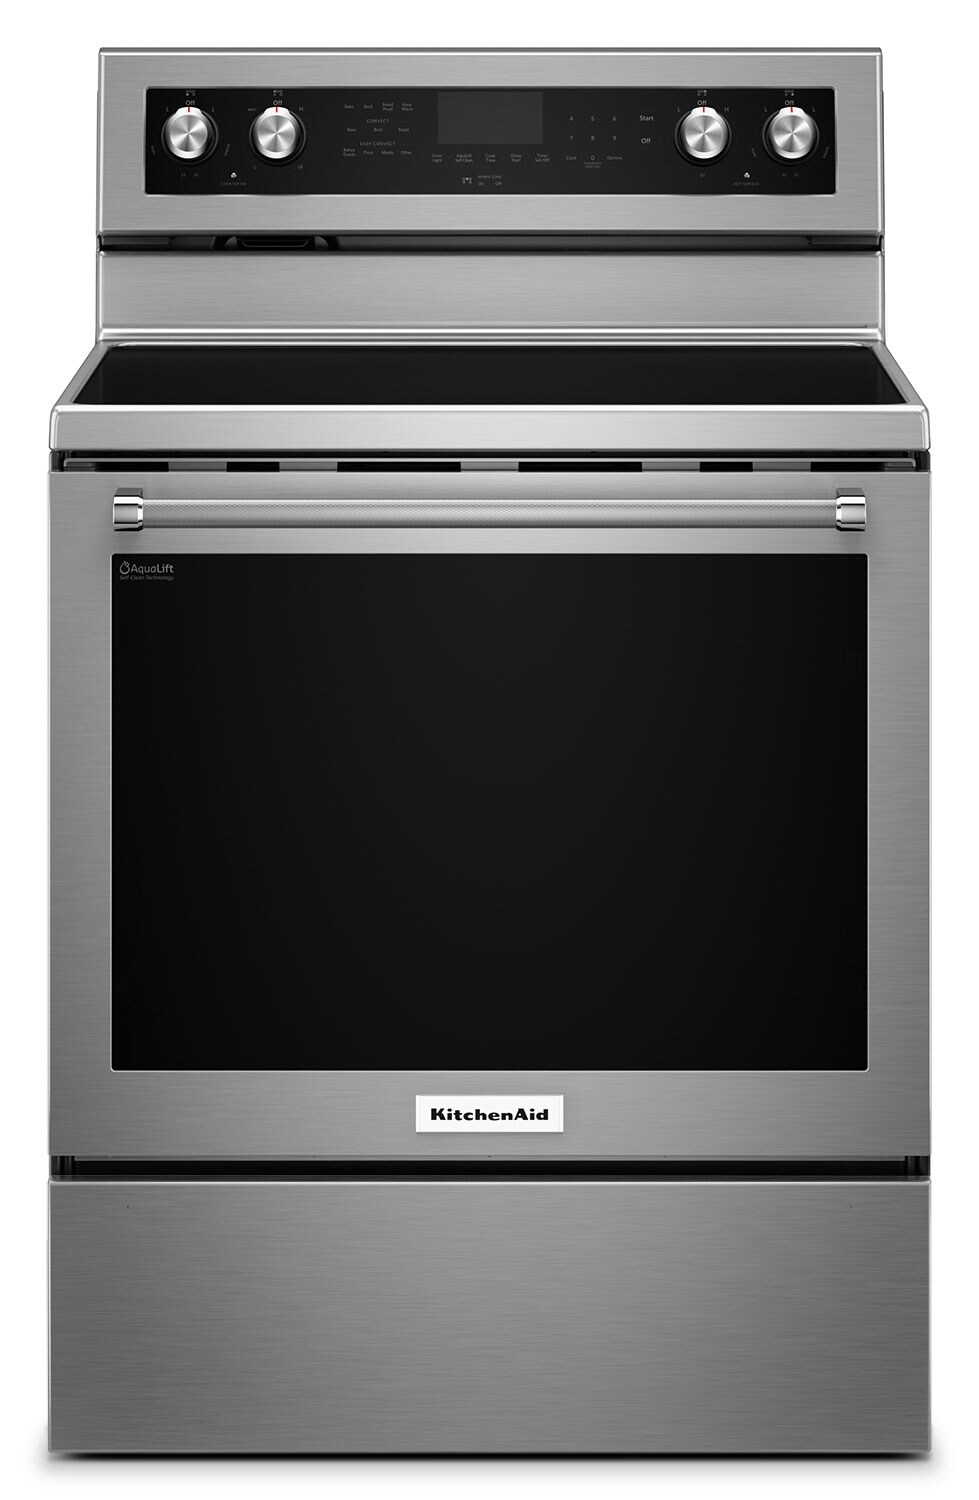 [KitchenAid Stainless Steel Freestanding Electric Convection Range (6.4 Cu. Ft.) - YKFEG500ESS]